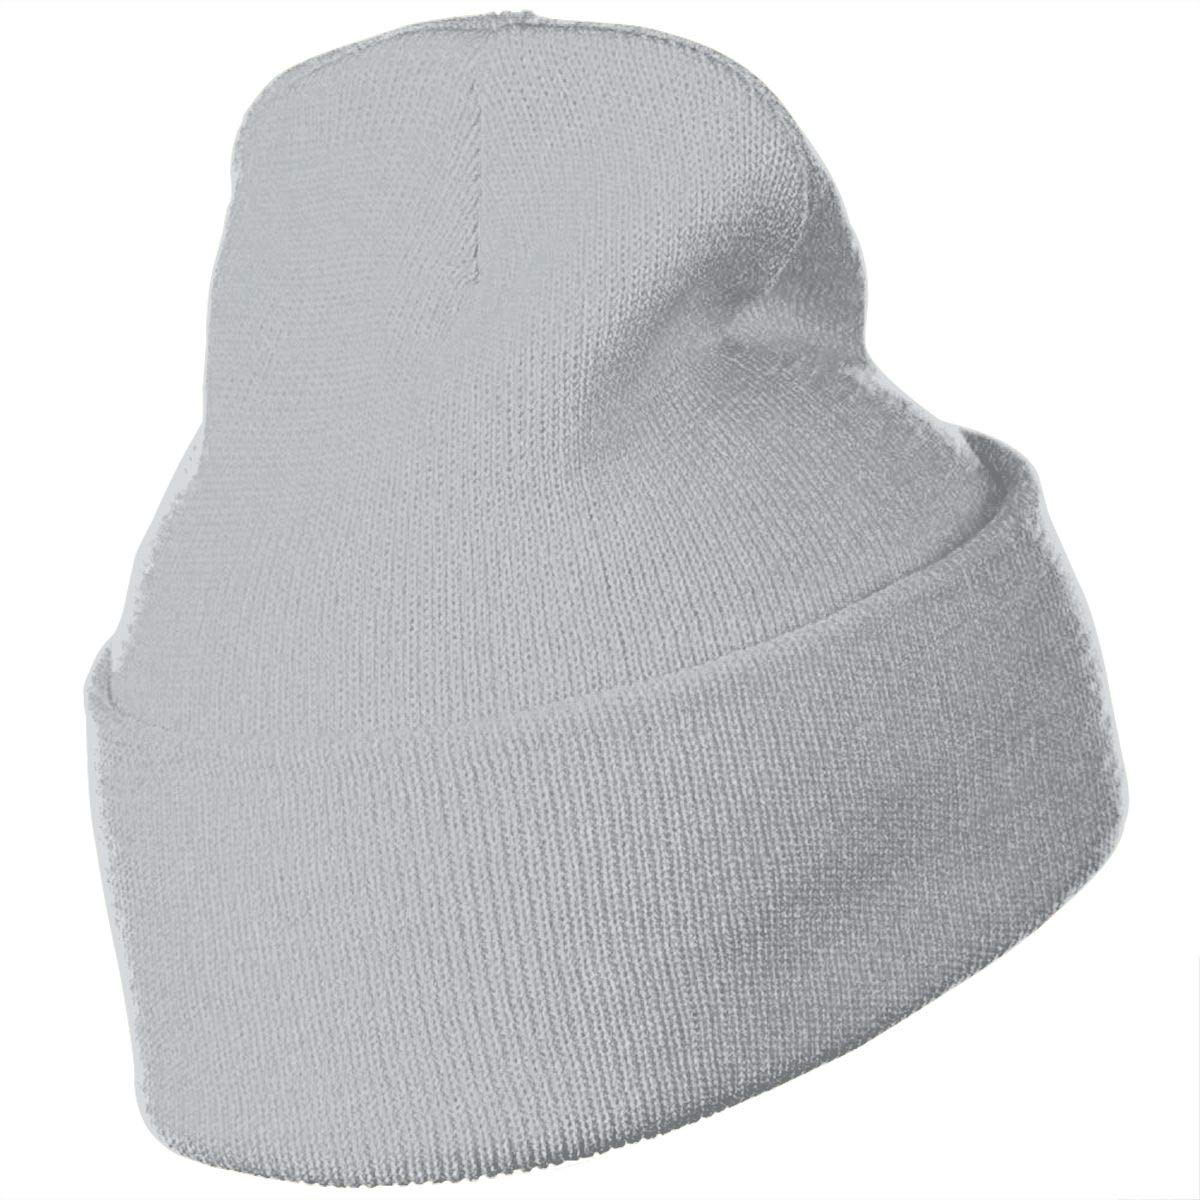 JimHappy Guitar Hat for Men and Women Winter Warm Hats Knit Slouchy Thick Skull Cap Black